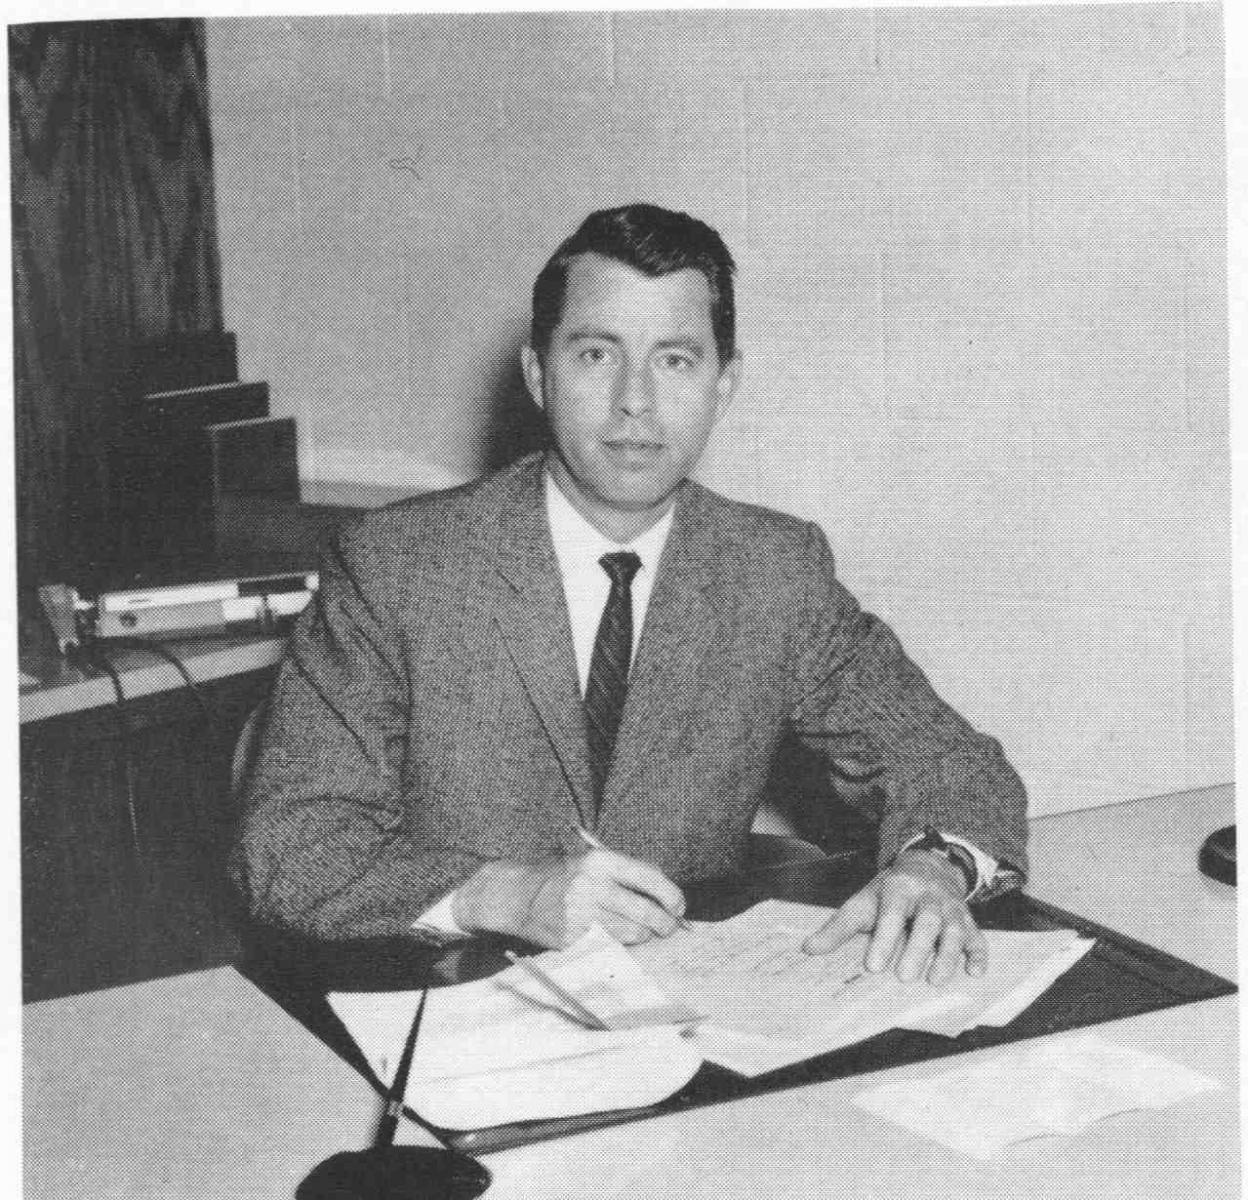 West Central School of Agriculture Superintendent Rodney A. Briggs, in 1960, transitioned to become the first Dean and Provost of UMM.